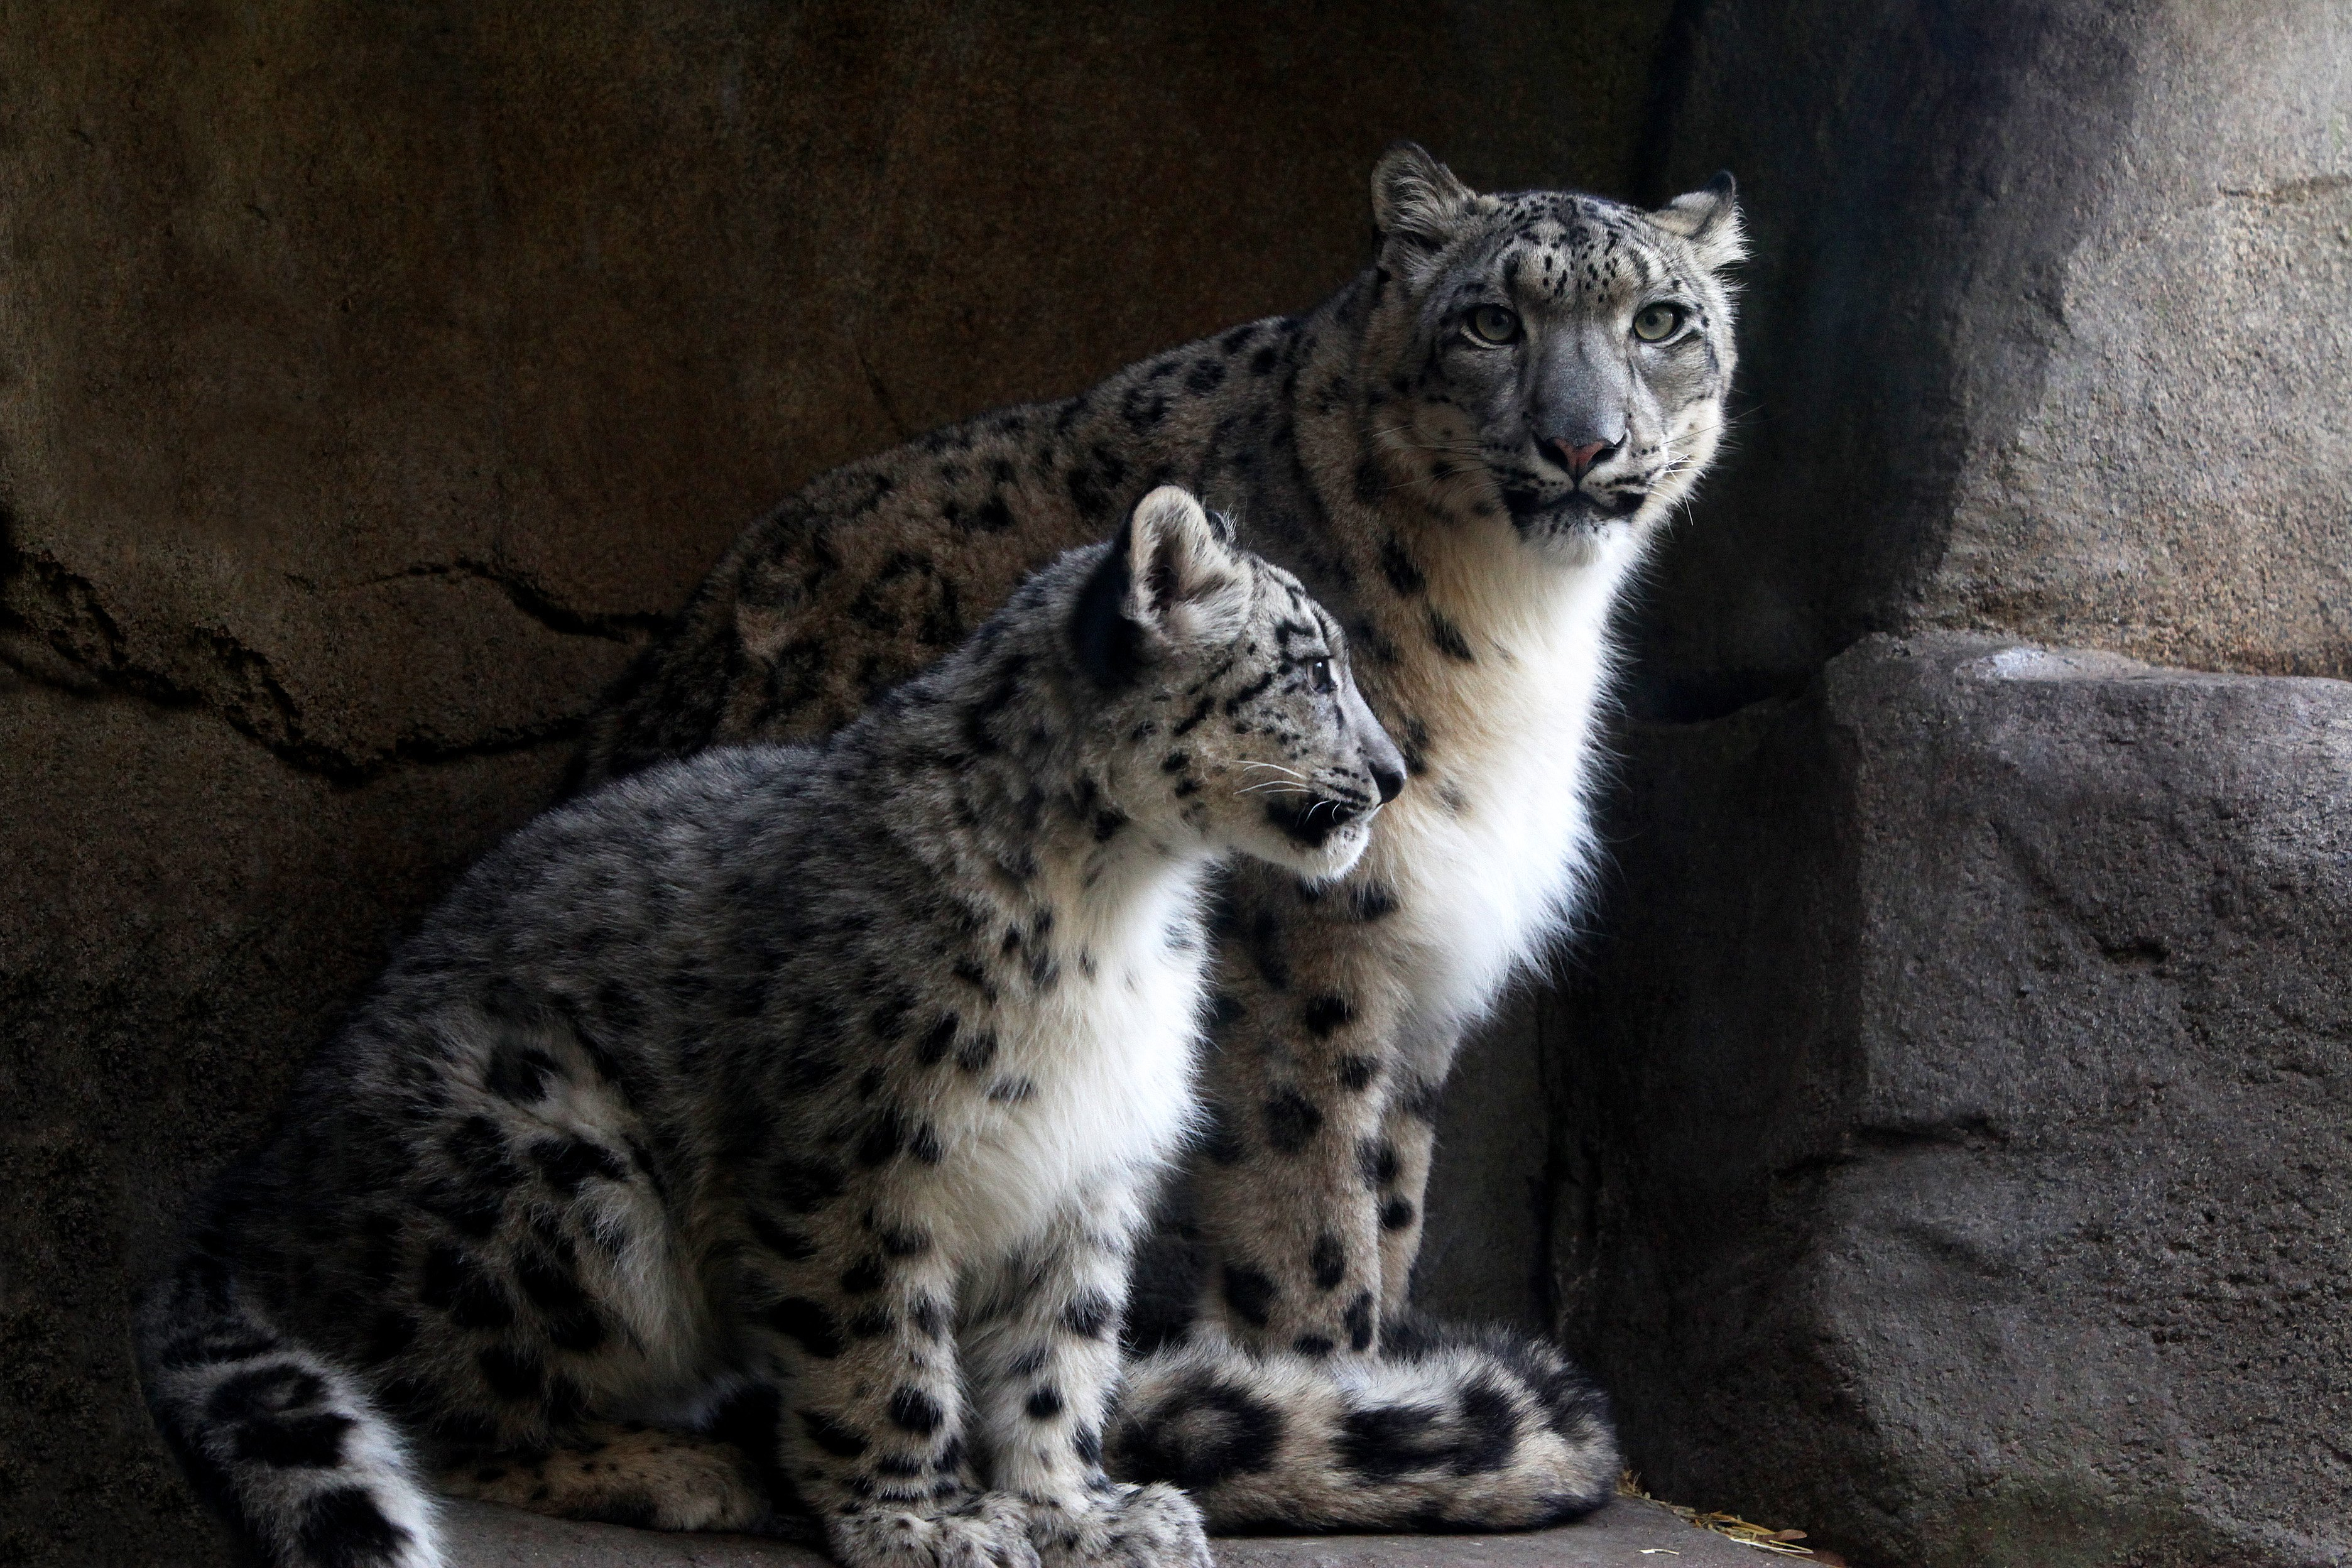 A baby and mother Snow Leopard, at Brookfield Zoo in Brookfield, Illinois on Nov. 14, 2013.